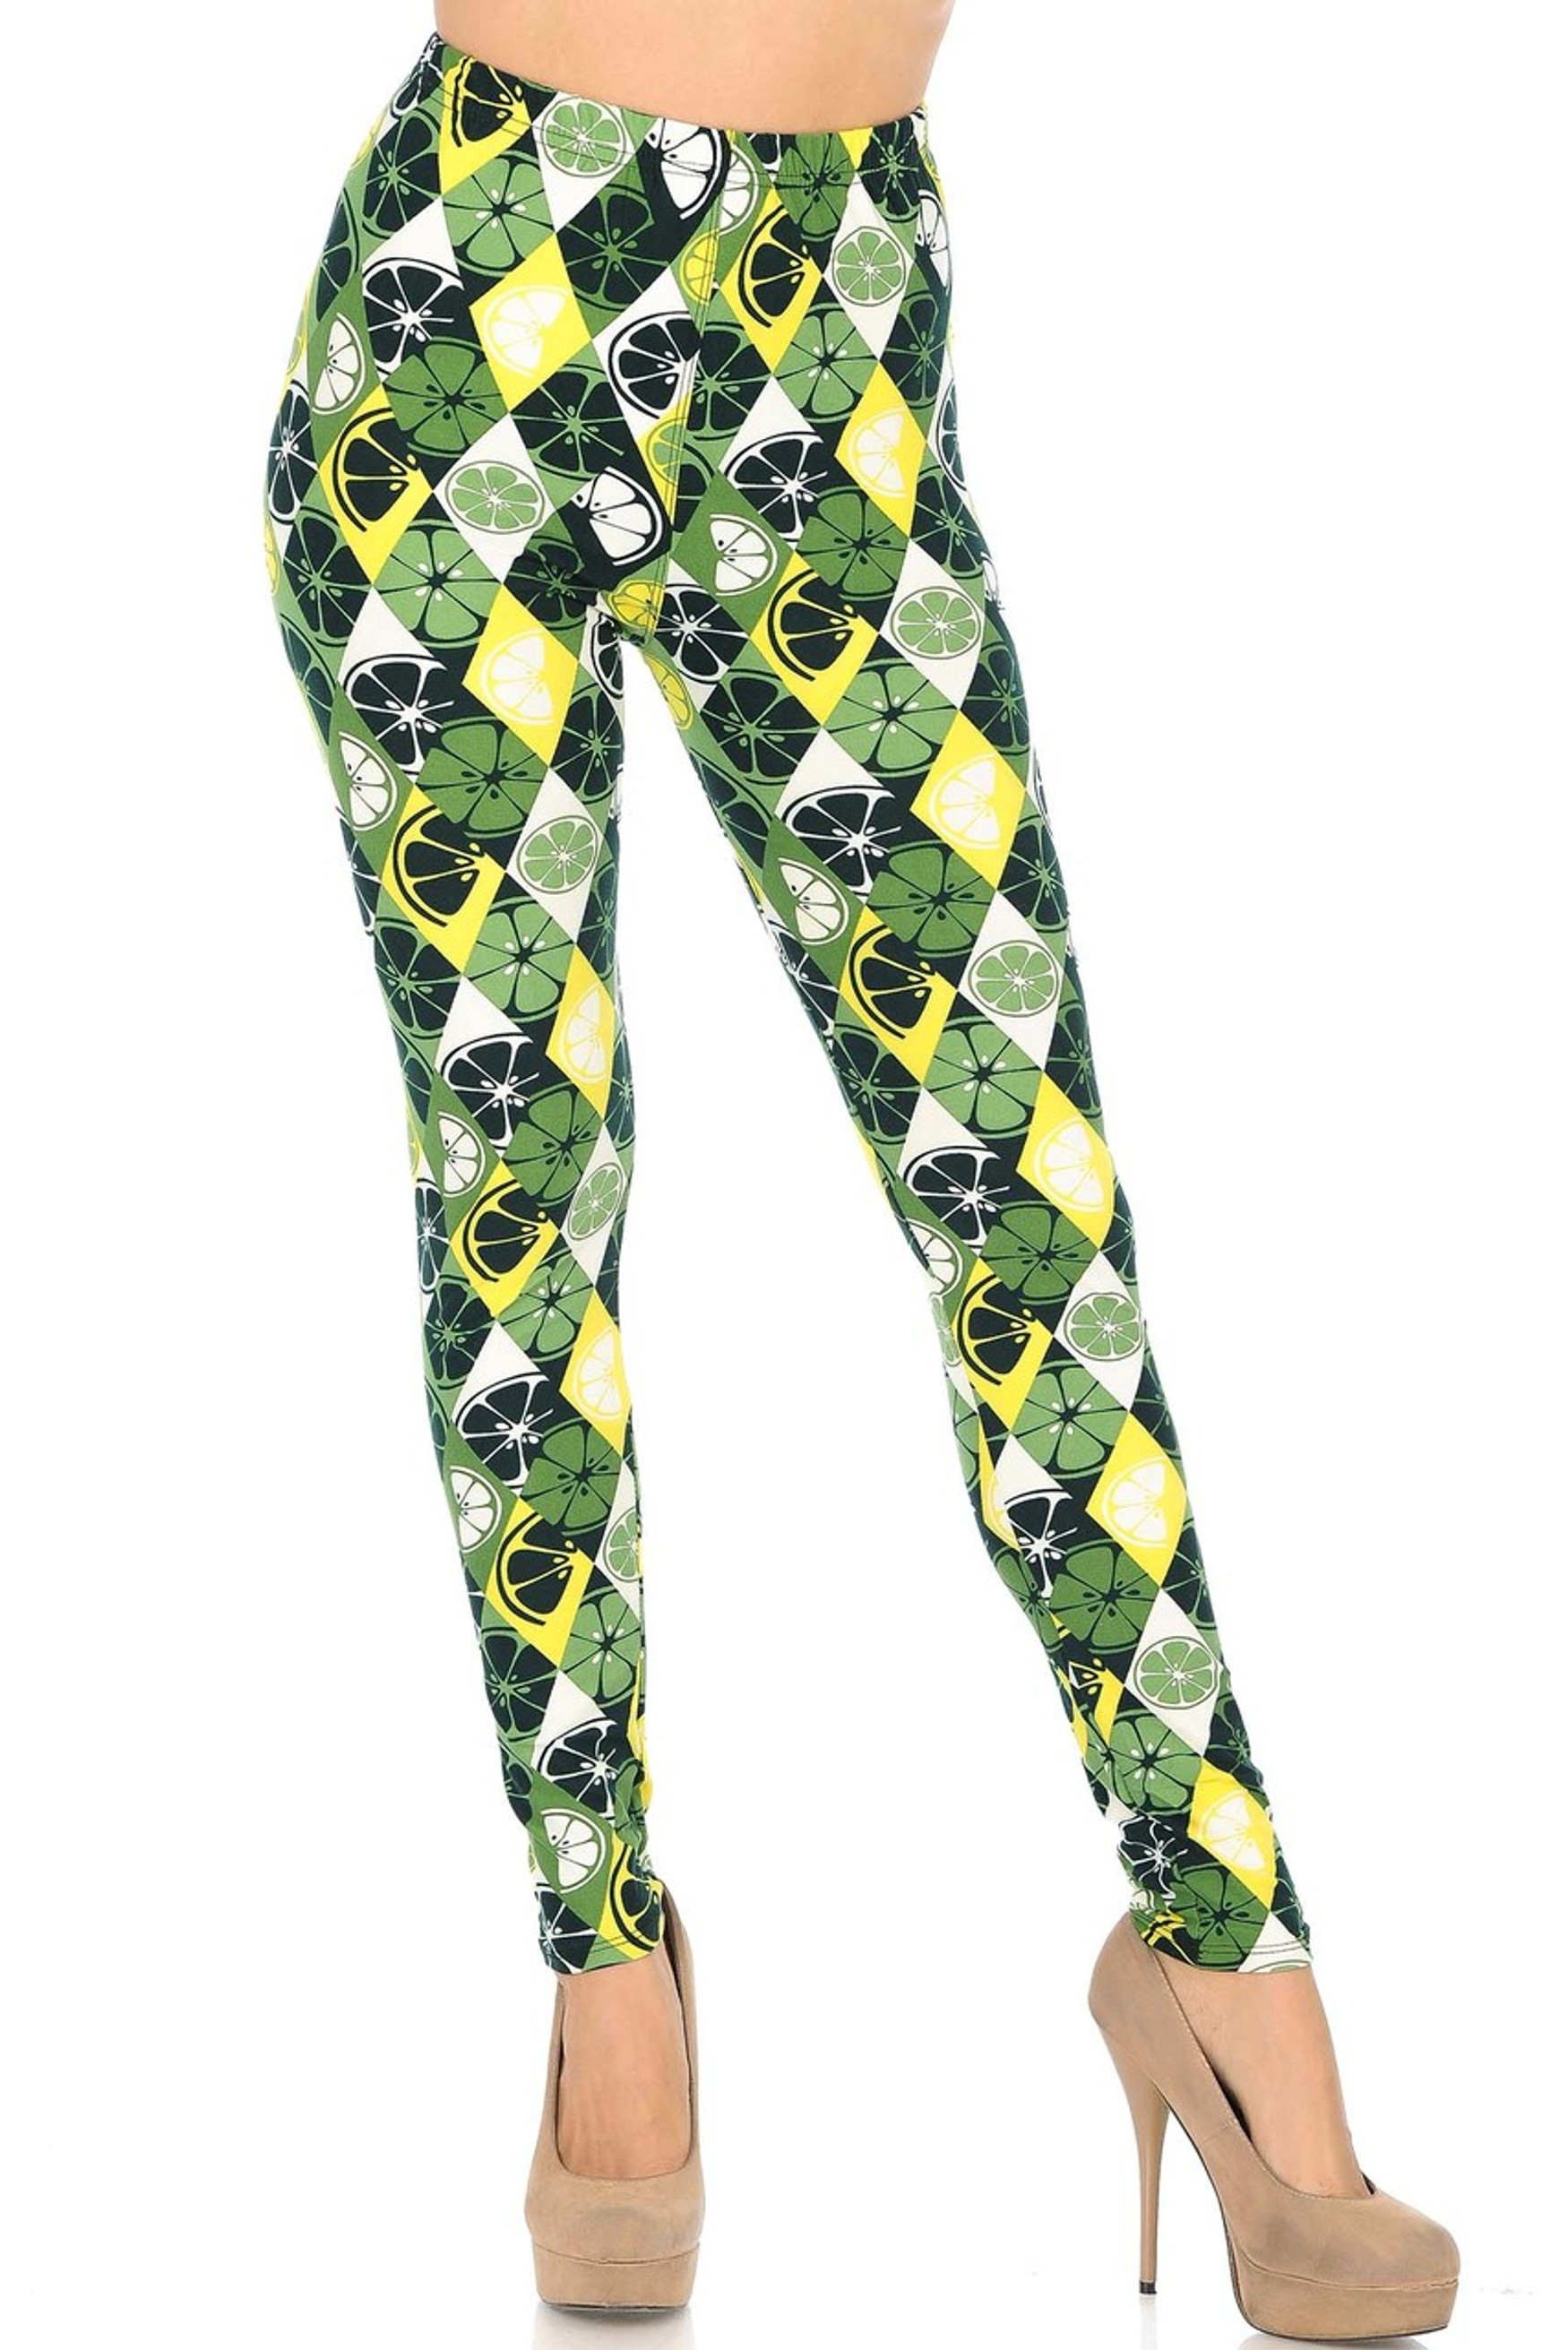 Brushed Luck of the Irish Limes Leggings